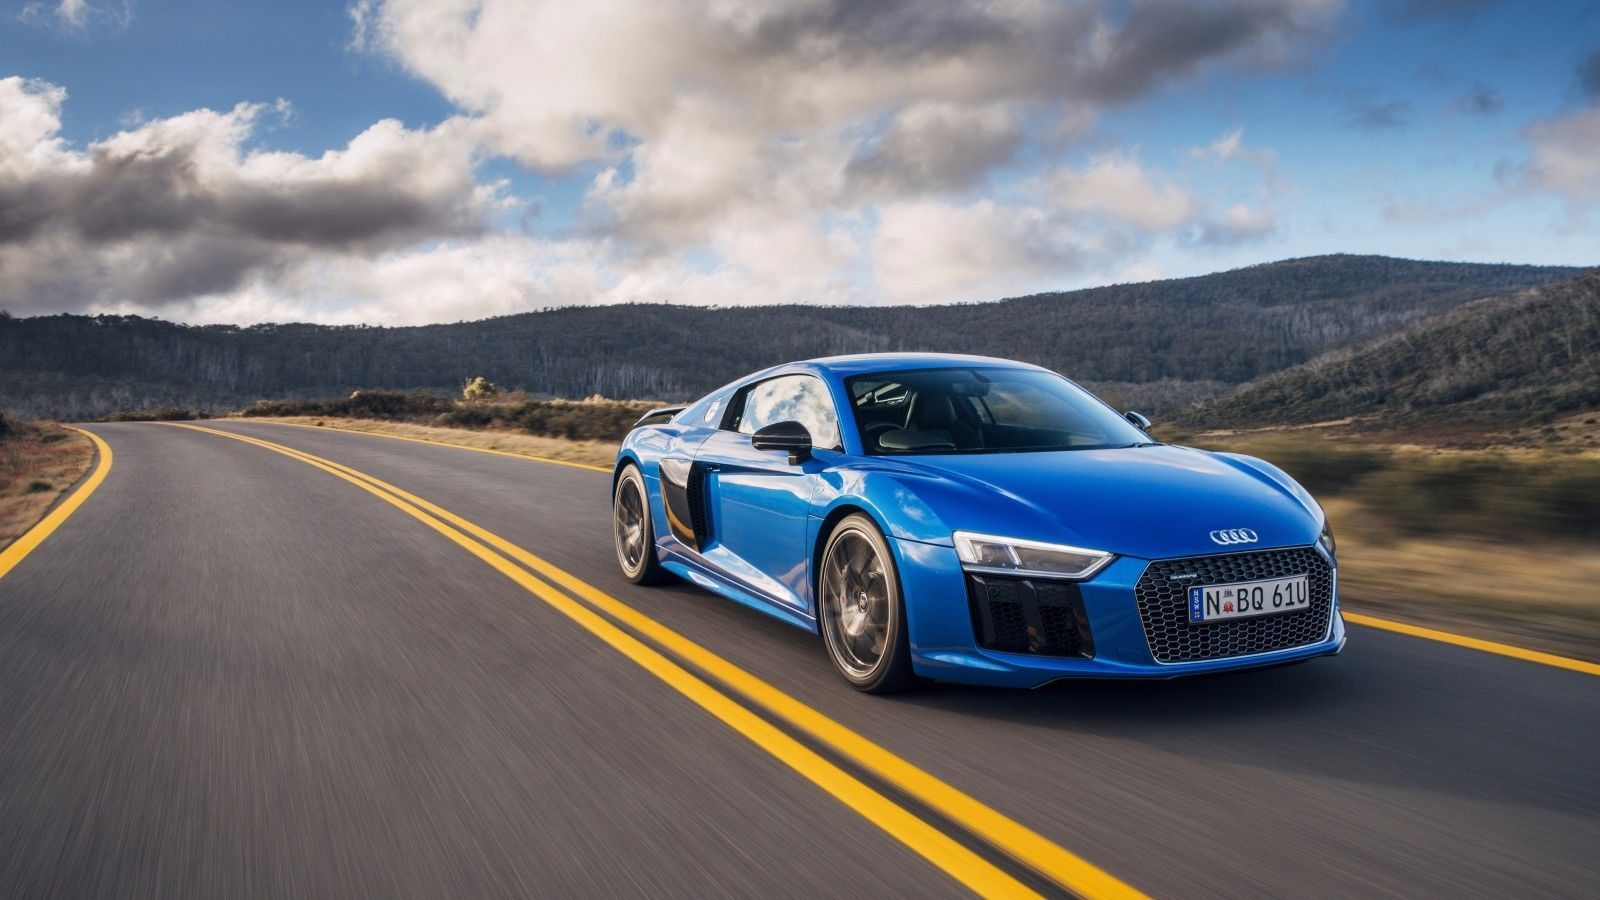 Primary image for 2016 Audi r8 blue 24X36 inch poster, sports car